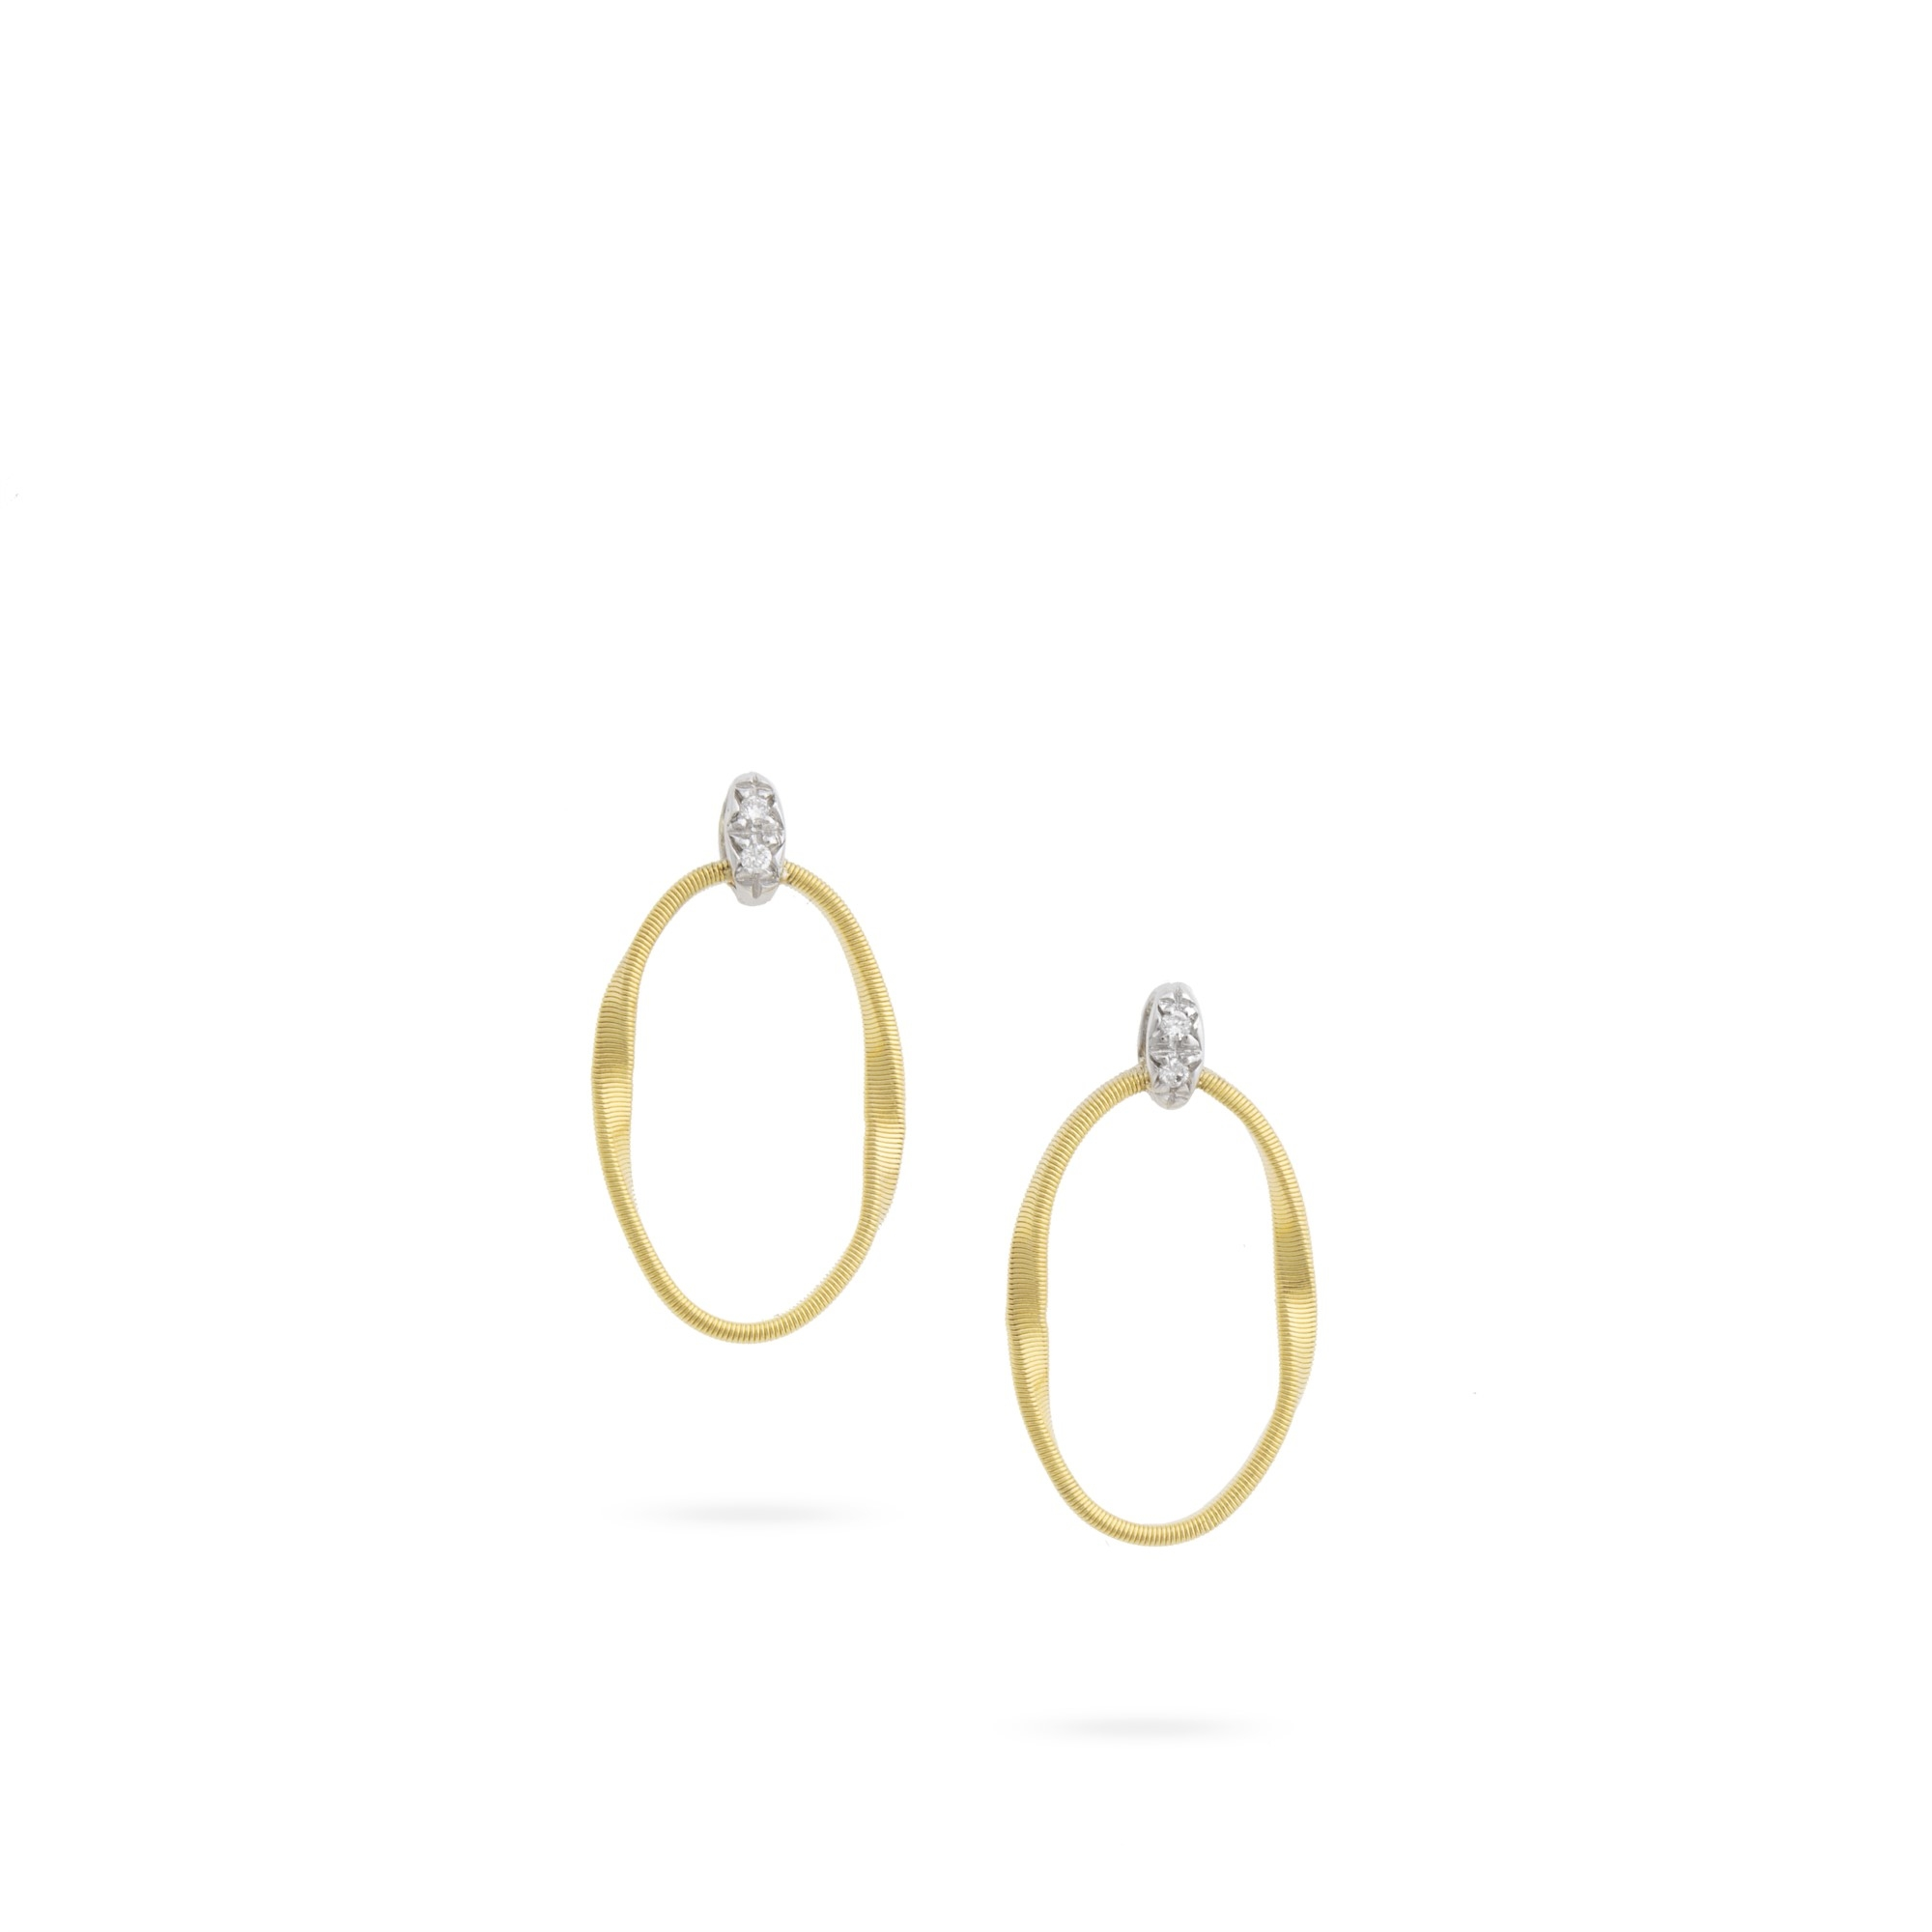 Marco Bicego 18K Yellow Gold .03cts  Diamonds Gold Earrings with Stones OG367 B YW